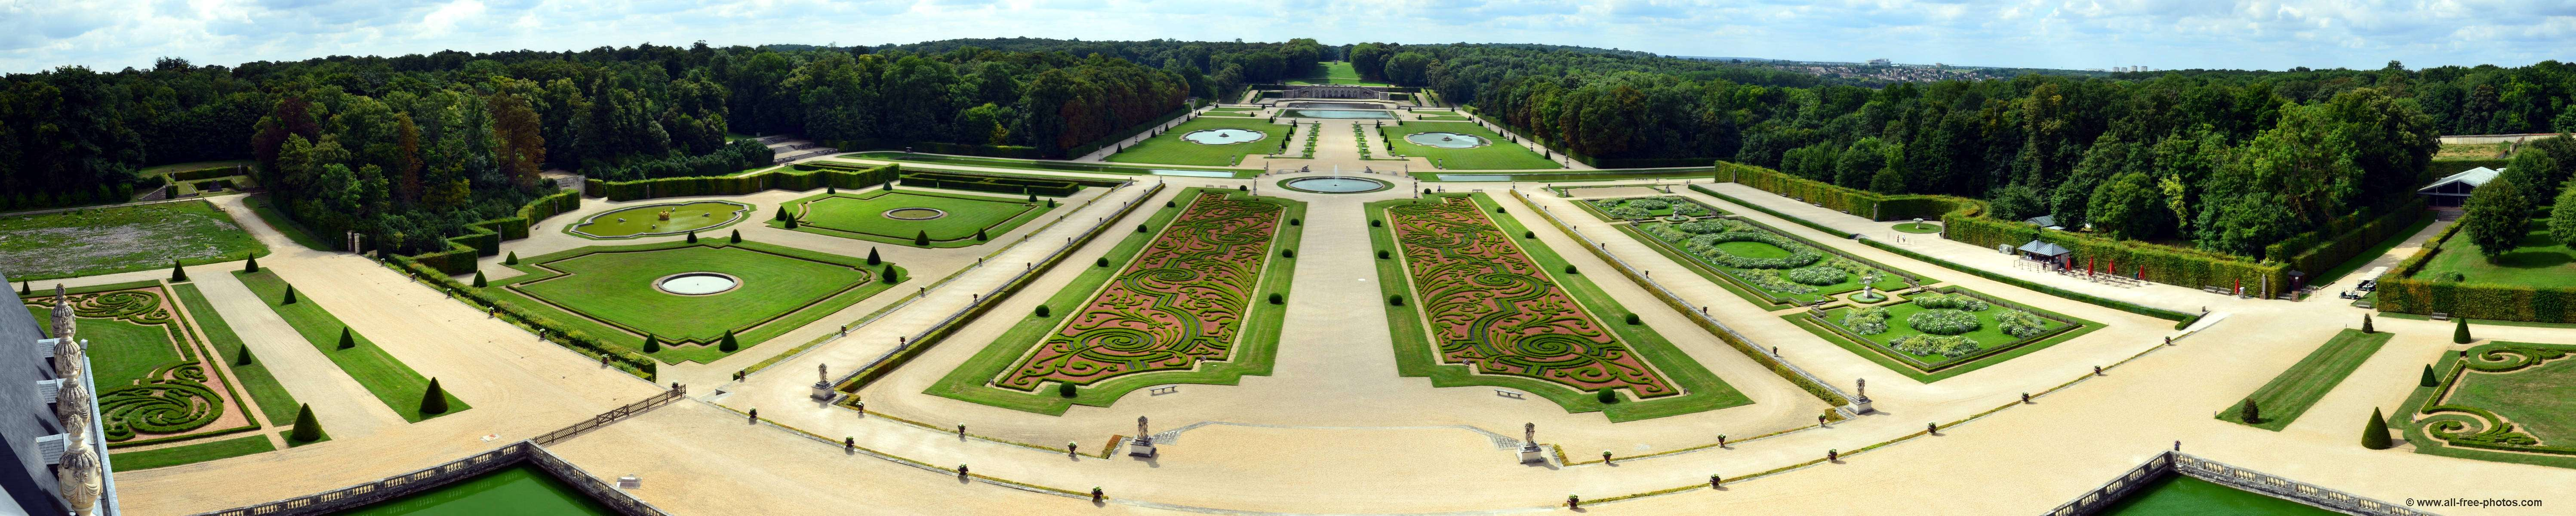 French style gardens - Chateau of Vaux-le-Vicomte - France